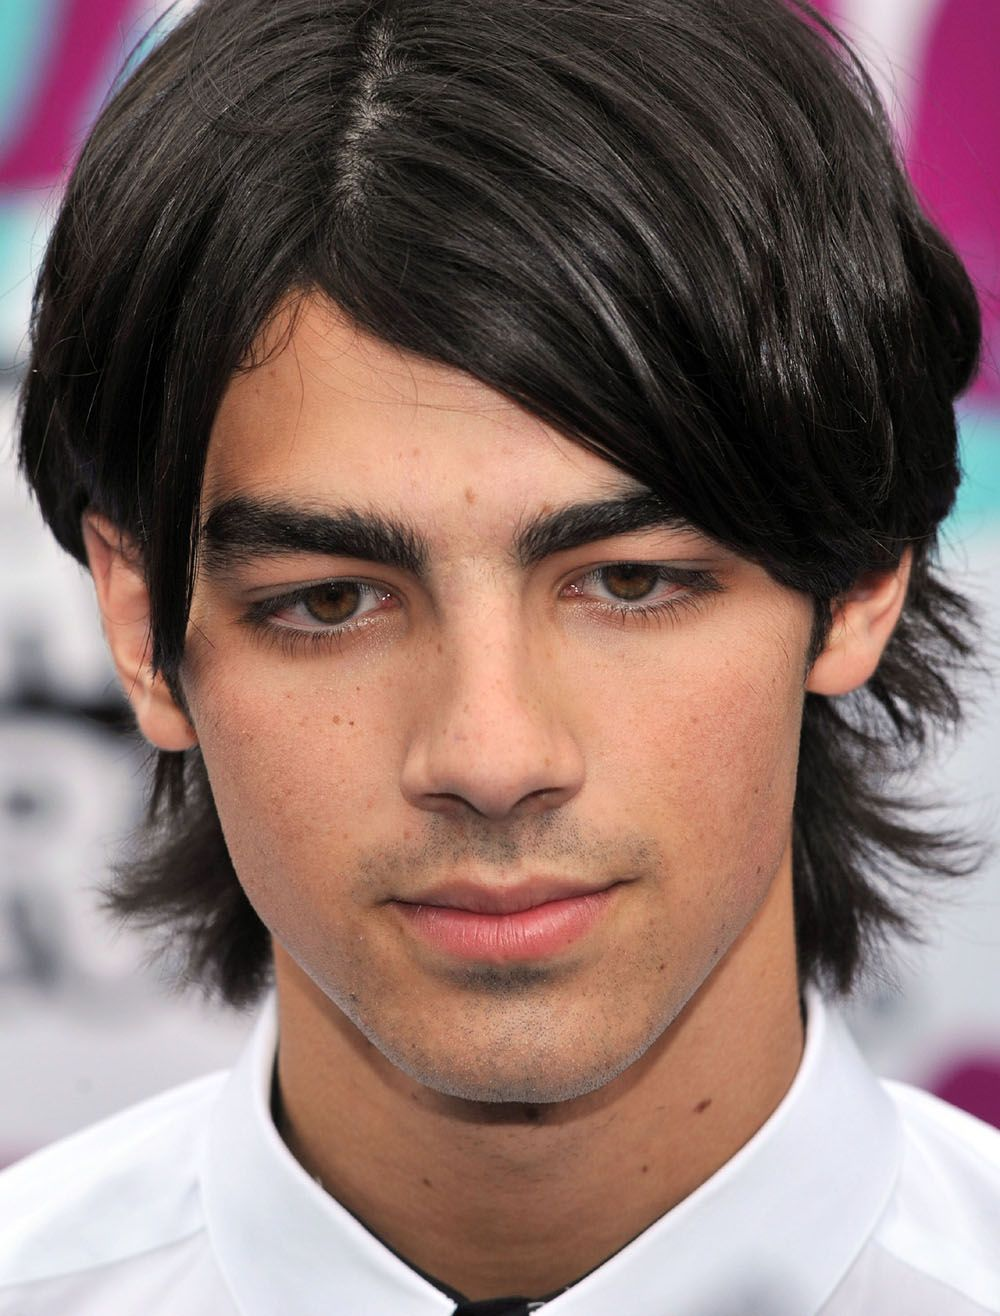 Joe Jonas 2008 Photoshoot